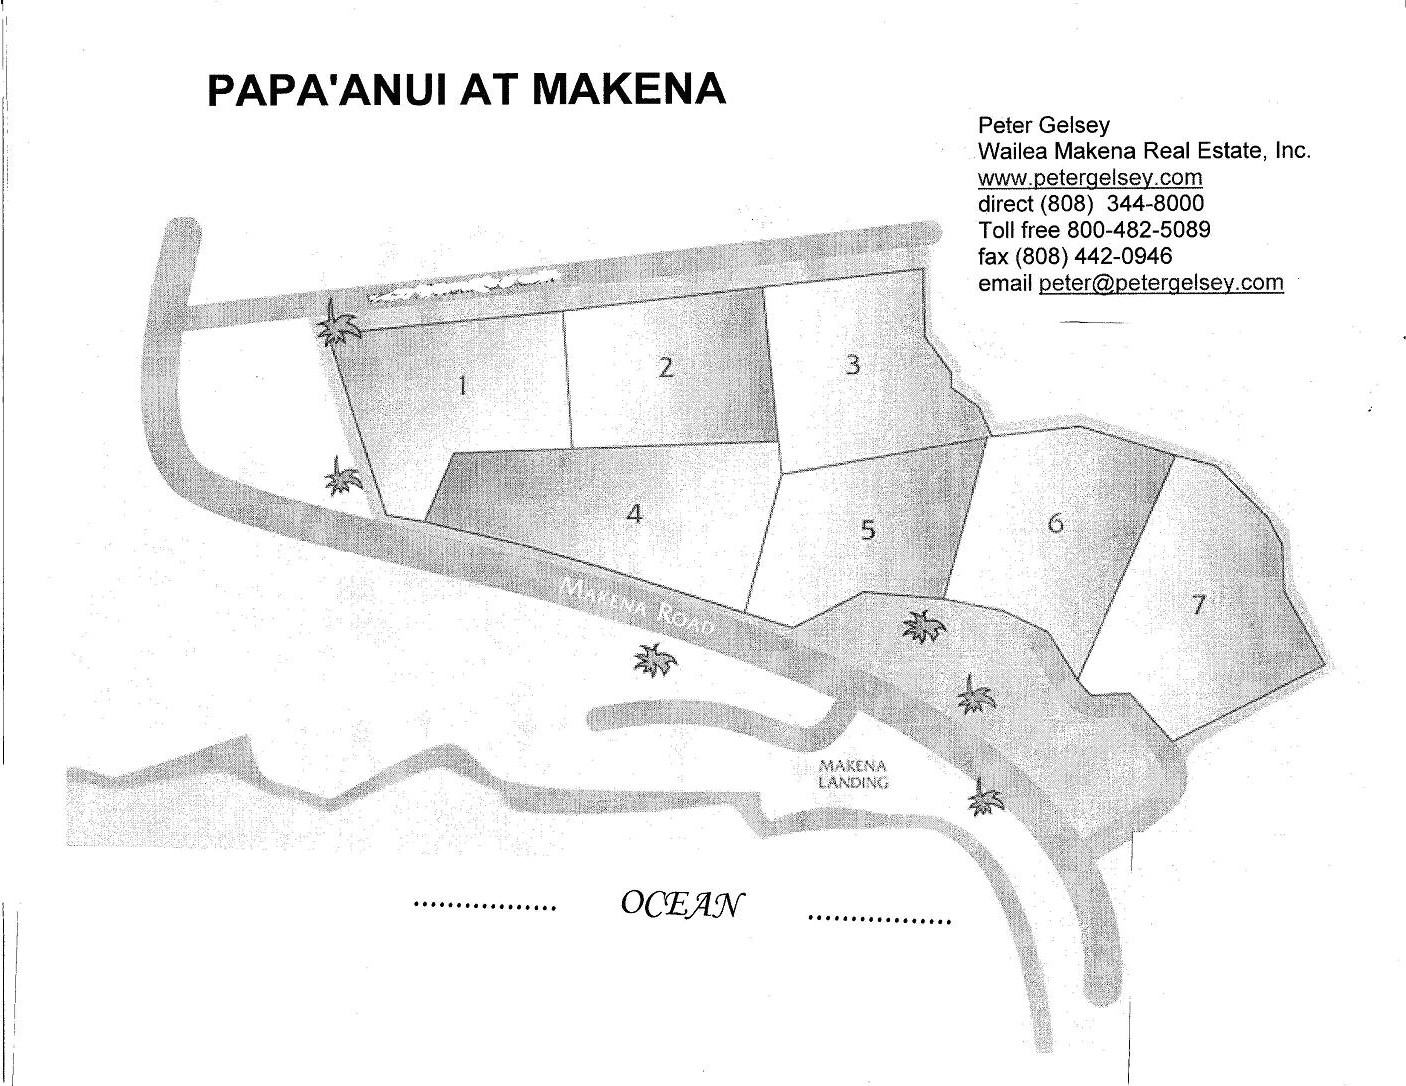 links wailea makena real estate inc papanui site map project layout site plan